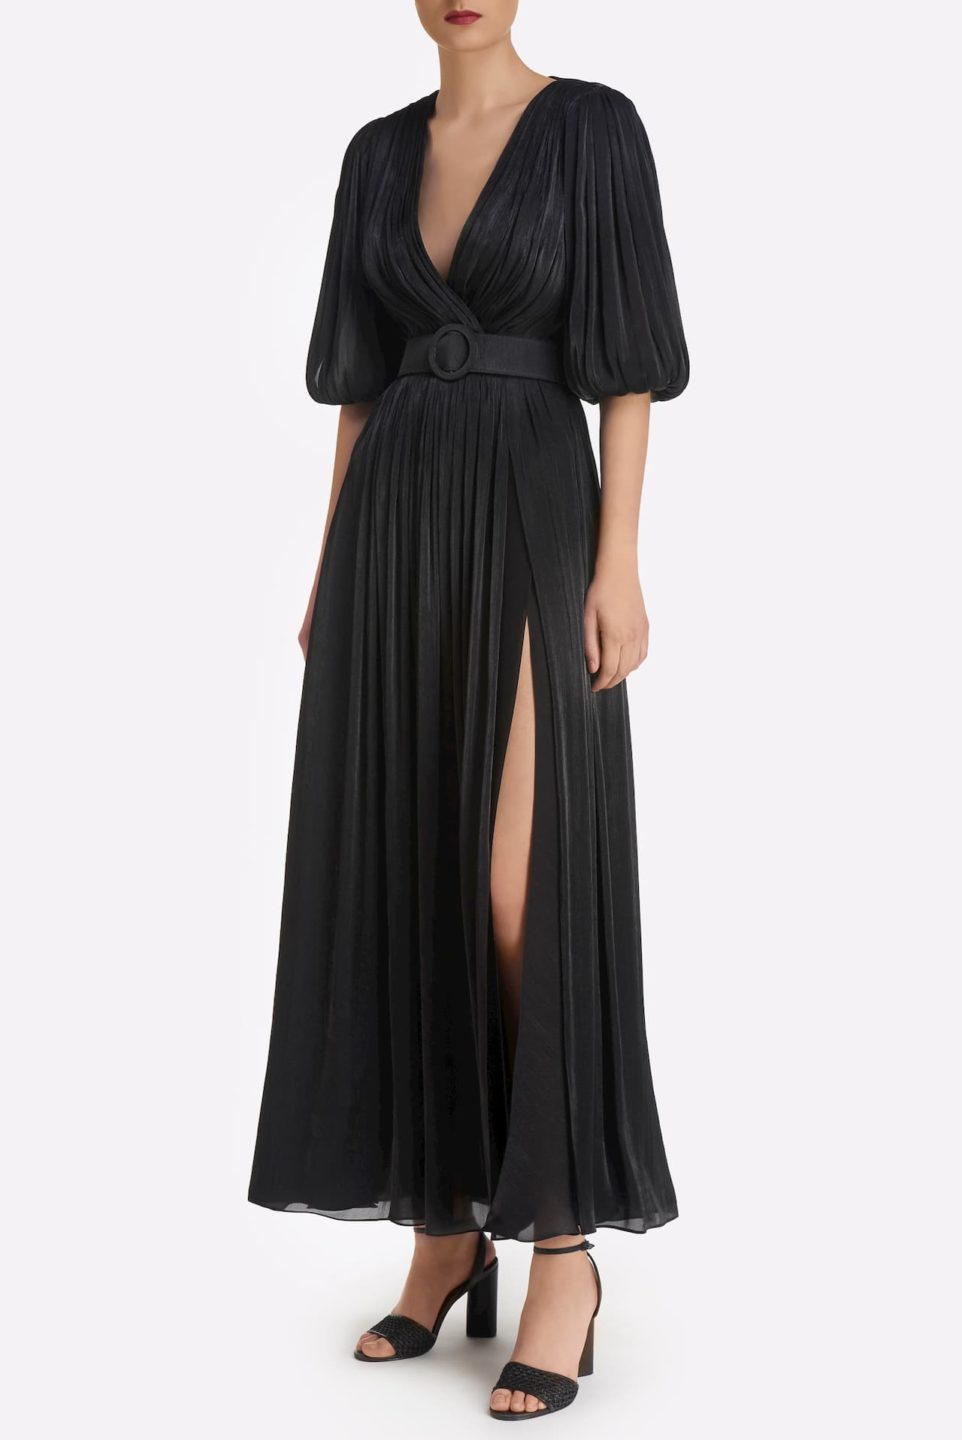 Brennie SS2144 Black Iridescent Lurex Georgette A-line Dress with side slit and coordinating belt